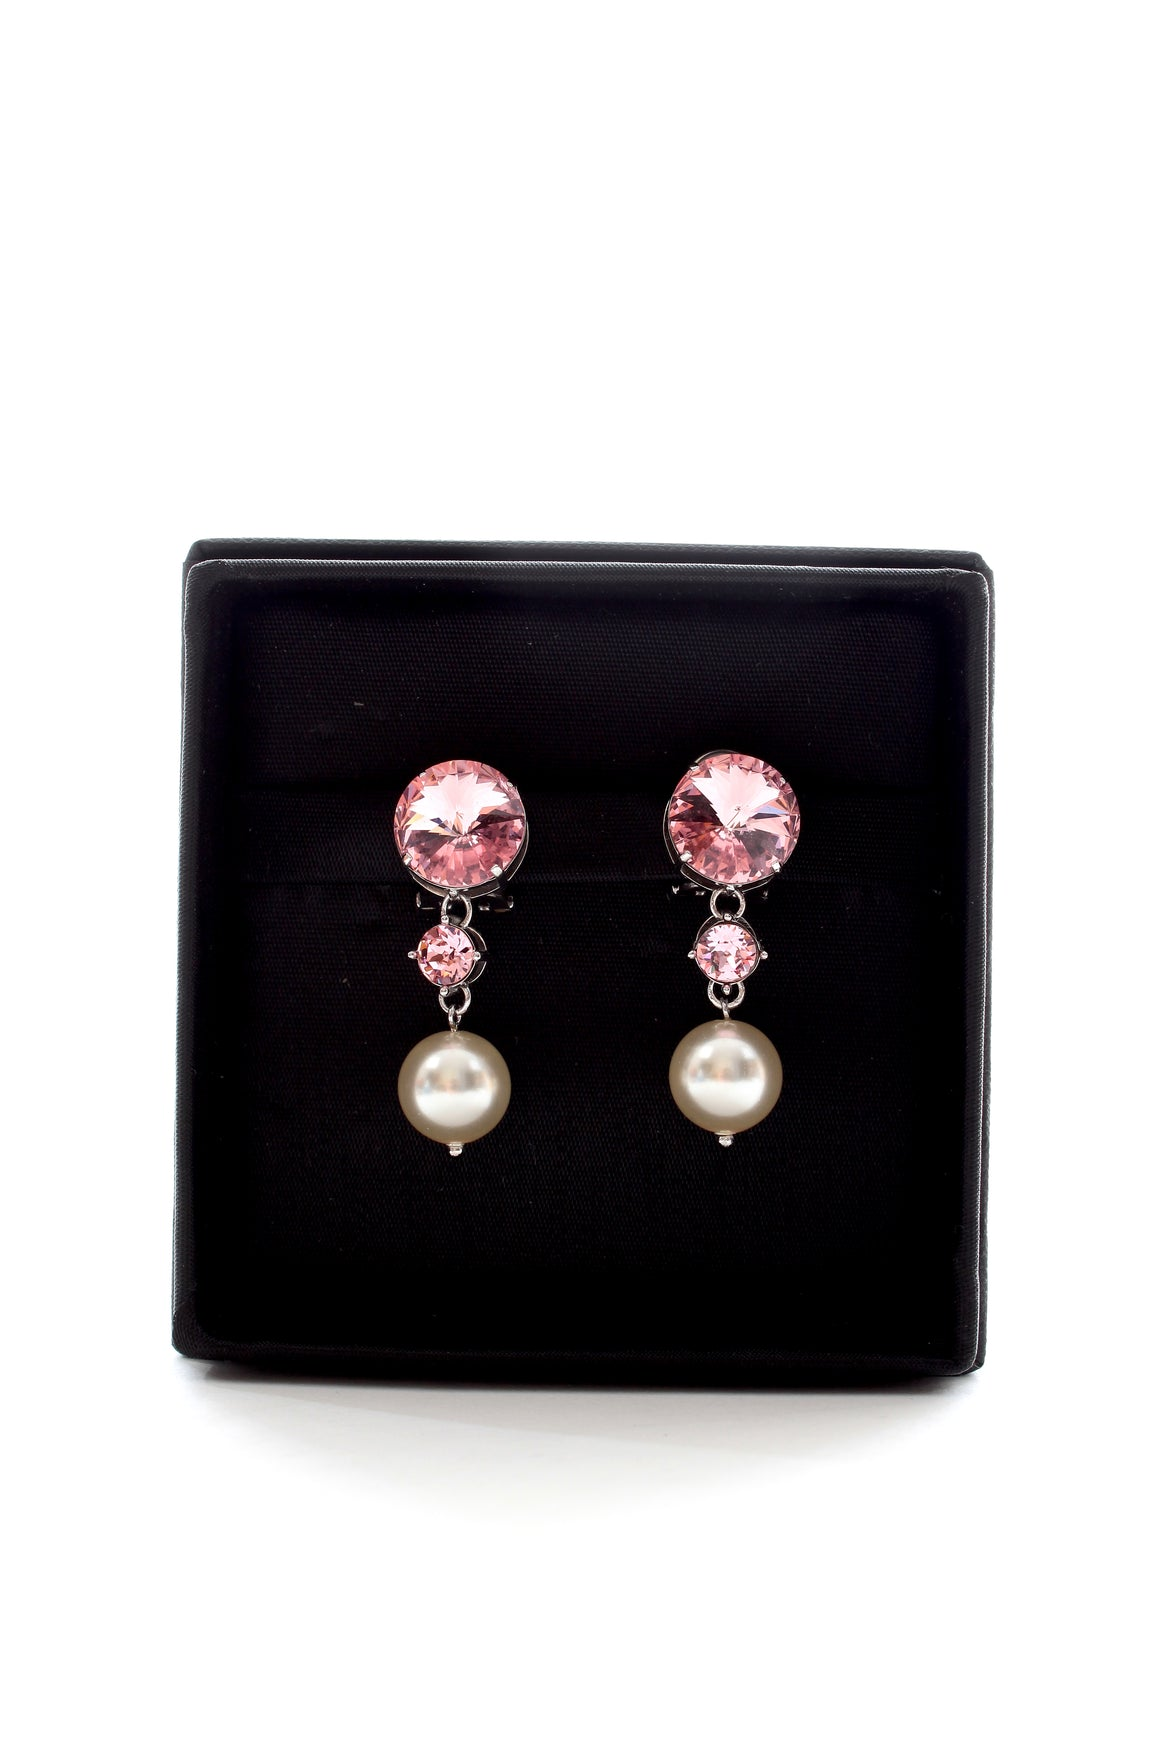 Miu Miu Pearl and Crystal Drop Earrings